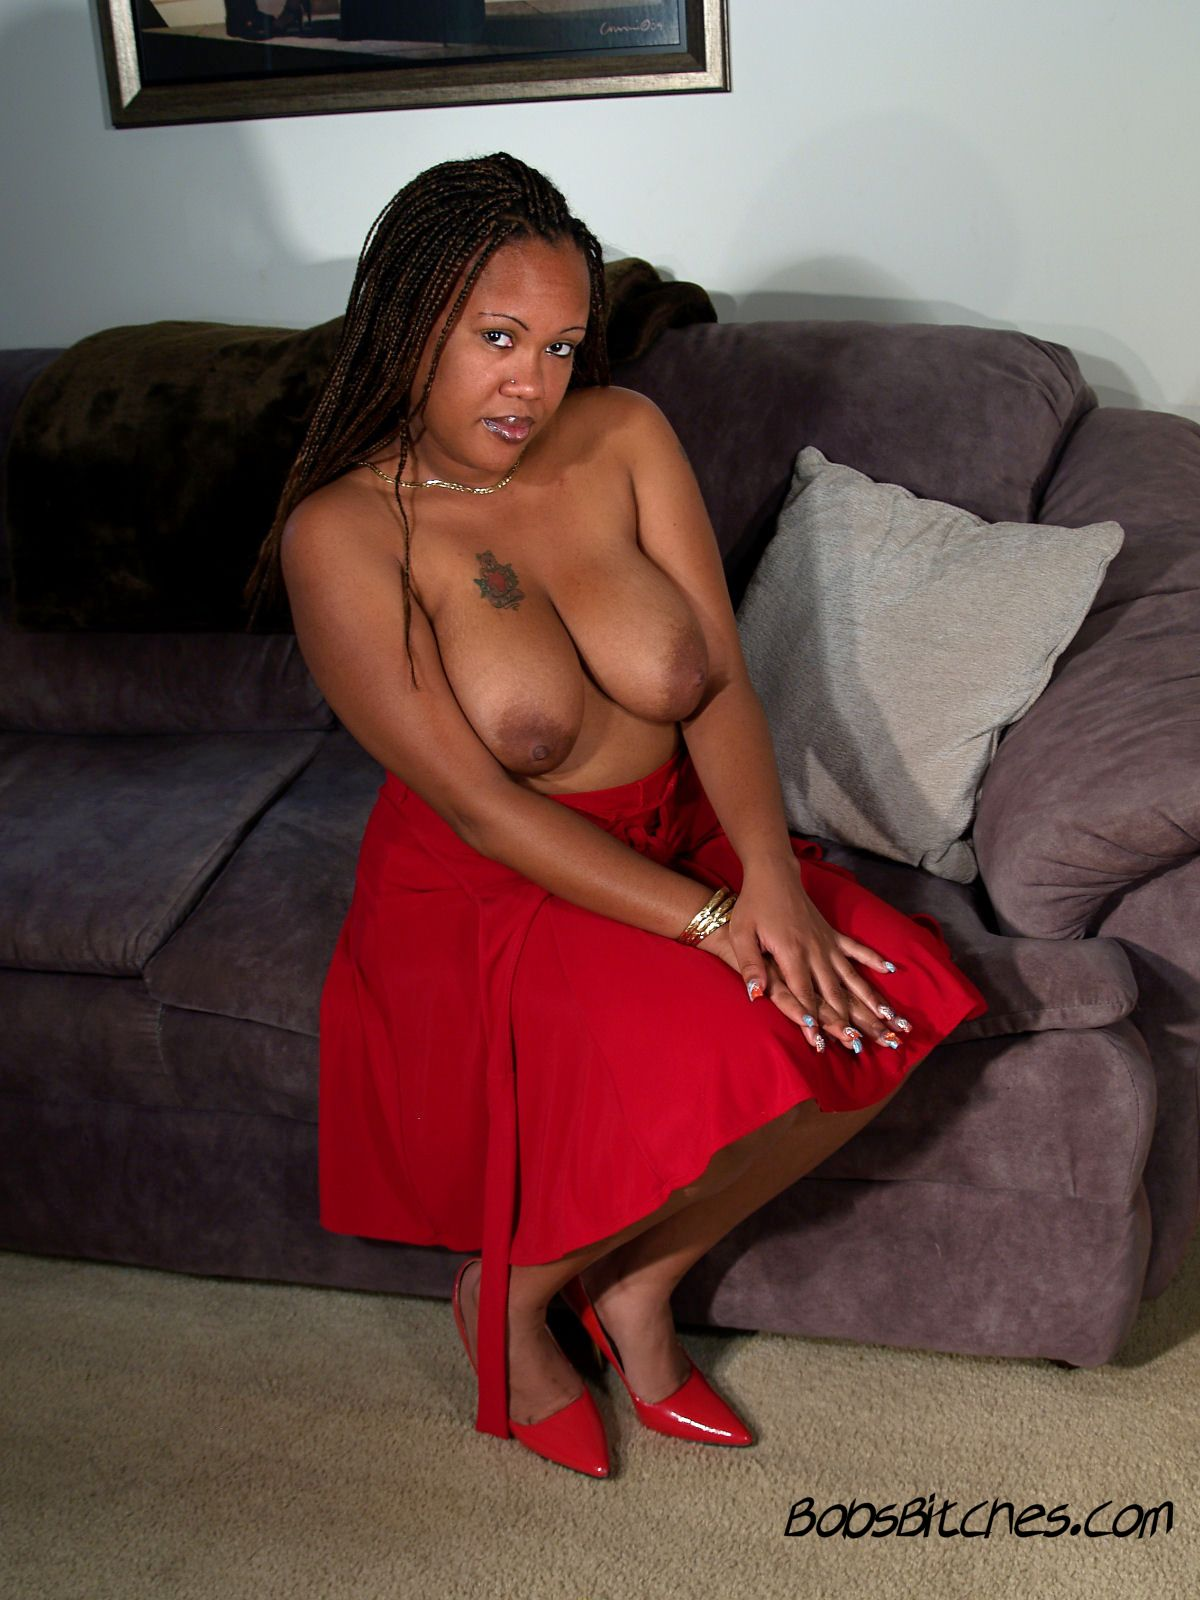 High heeled, big tit, Margarita, exposes her large areolas.